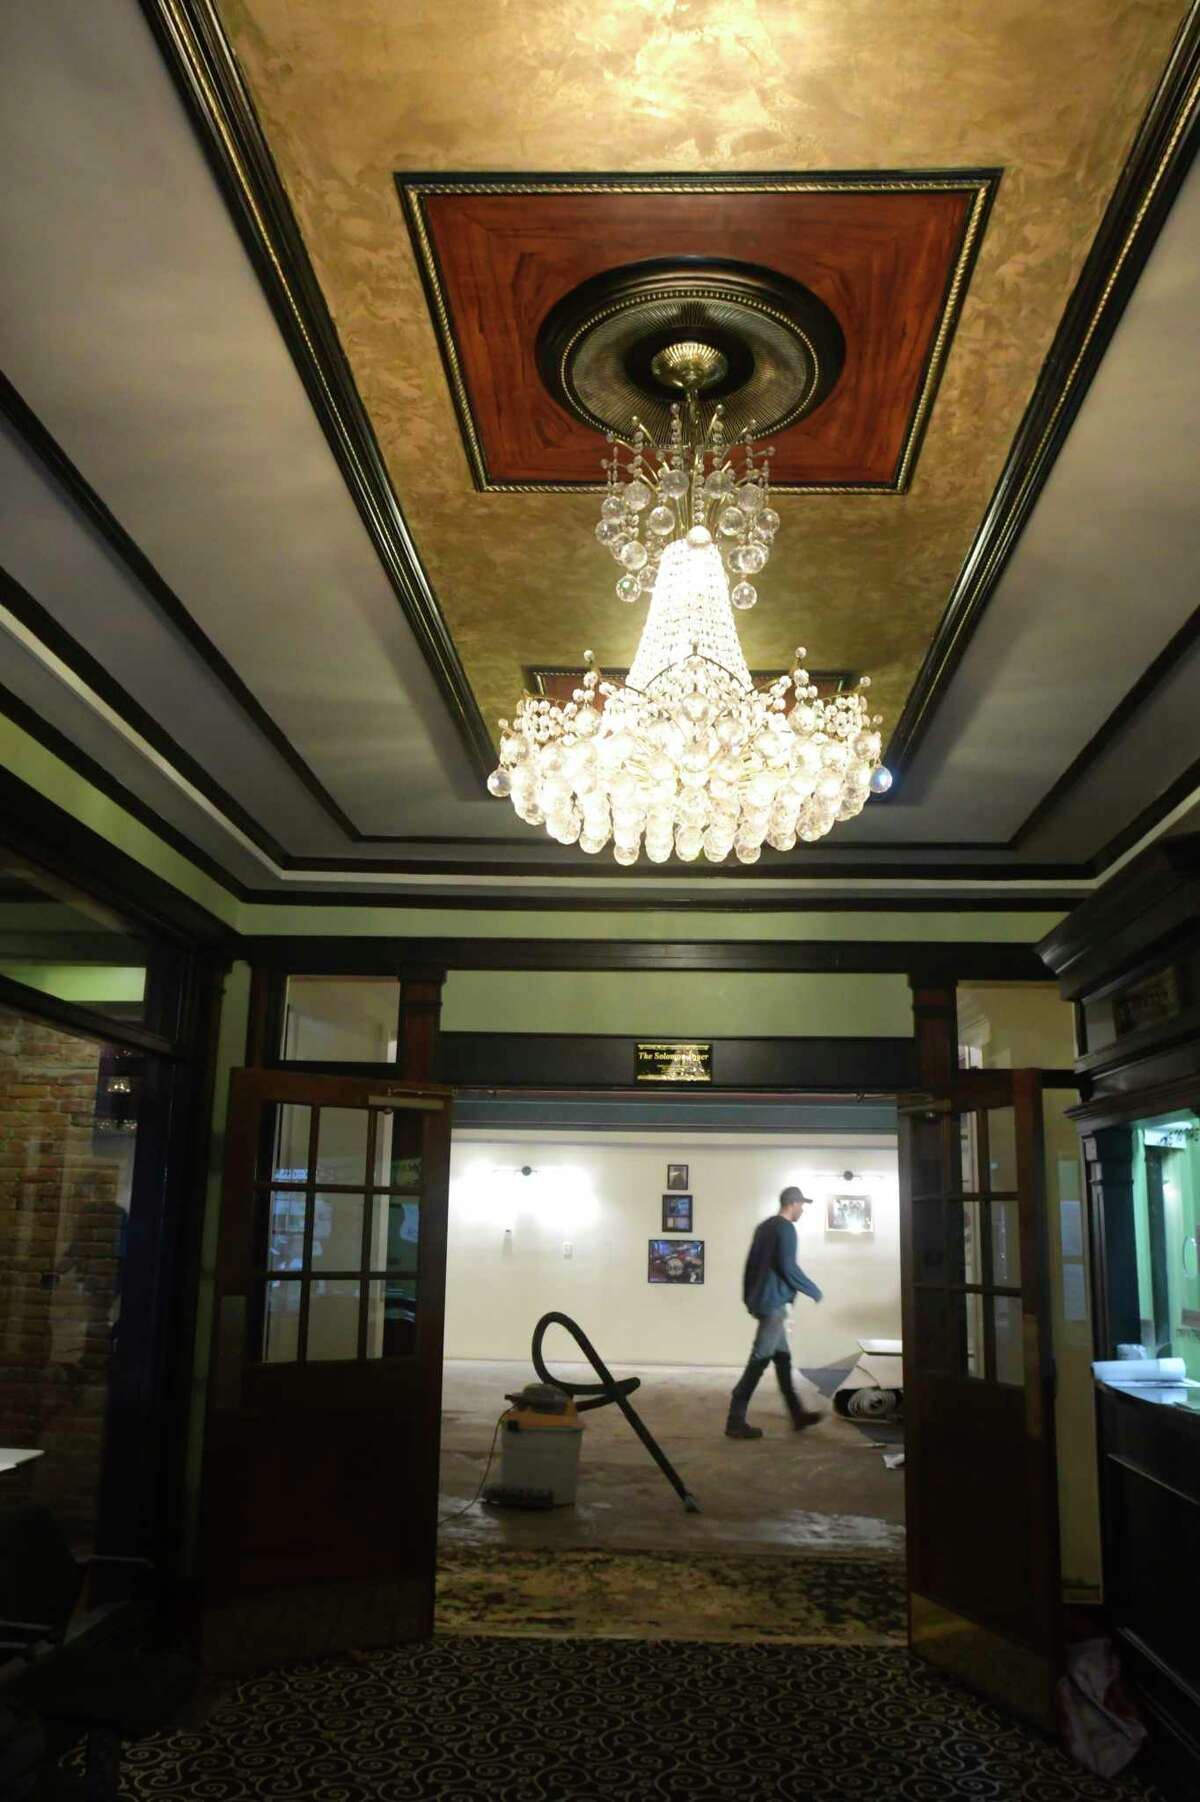 Renovation work continues inside the Hudson River Music Hall Strand Theatre on Thursday, Oct. 17, 2019, in Hudson Falls, N.Y. The building was last used as the Kingsbury Town Hall before the Hudson River Music Hall Productions Inc. purchased the building. (Paul Buckowski/Times Union)